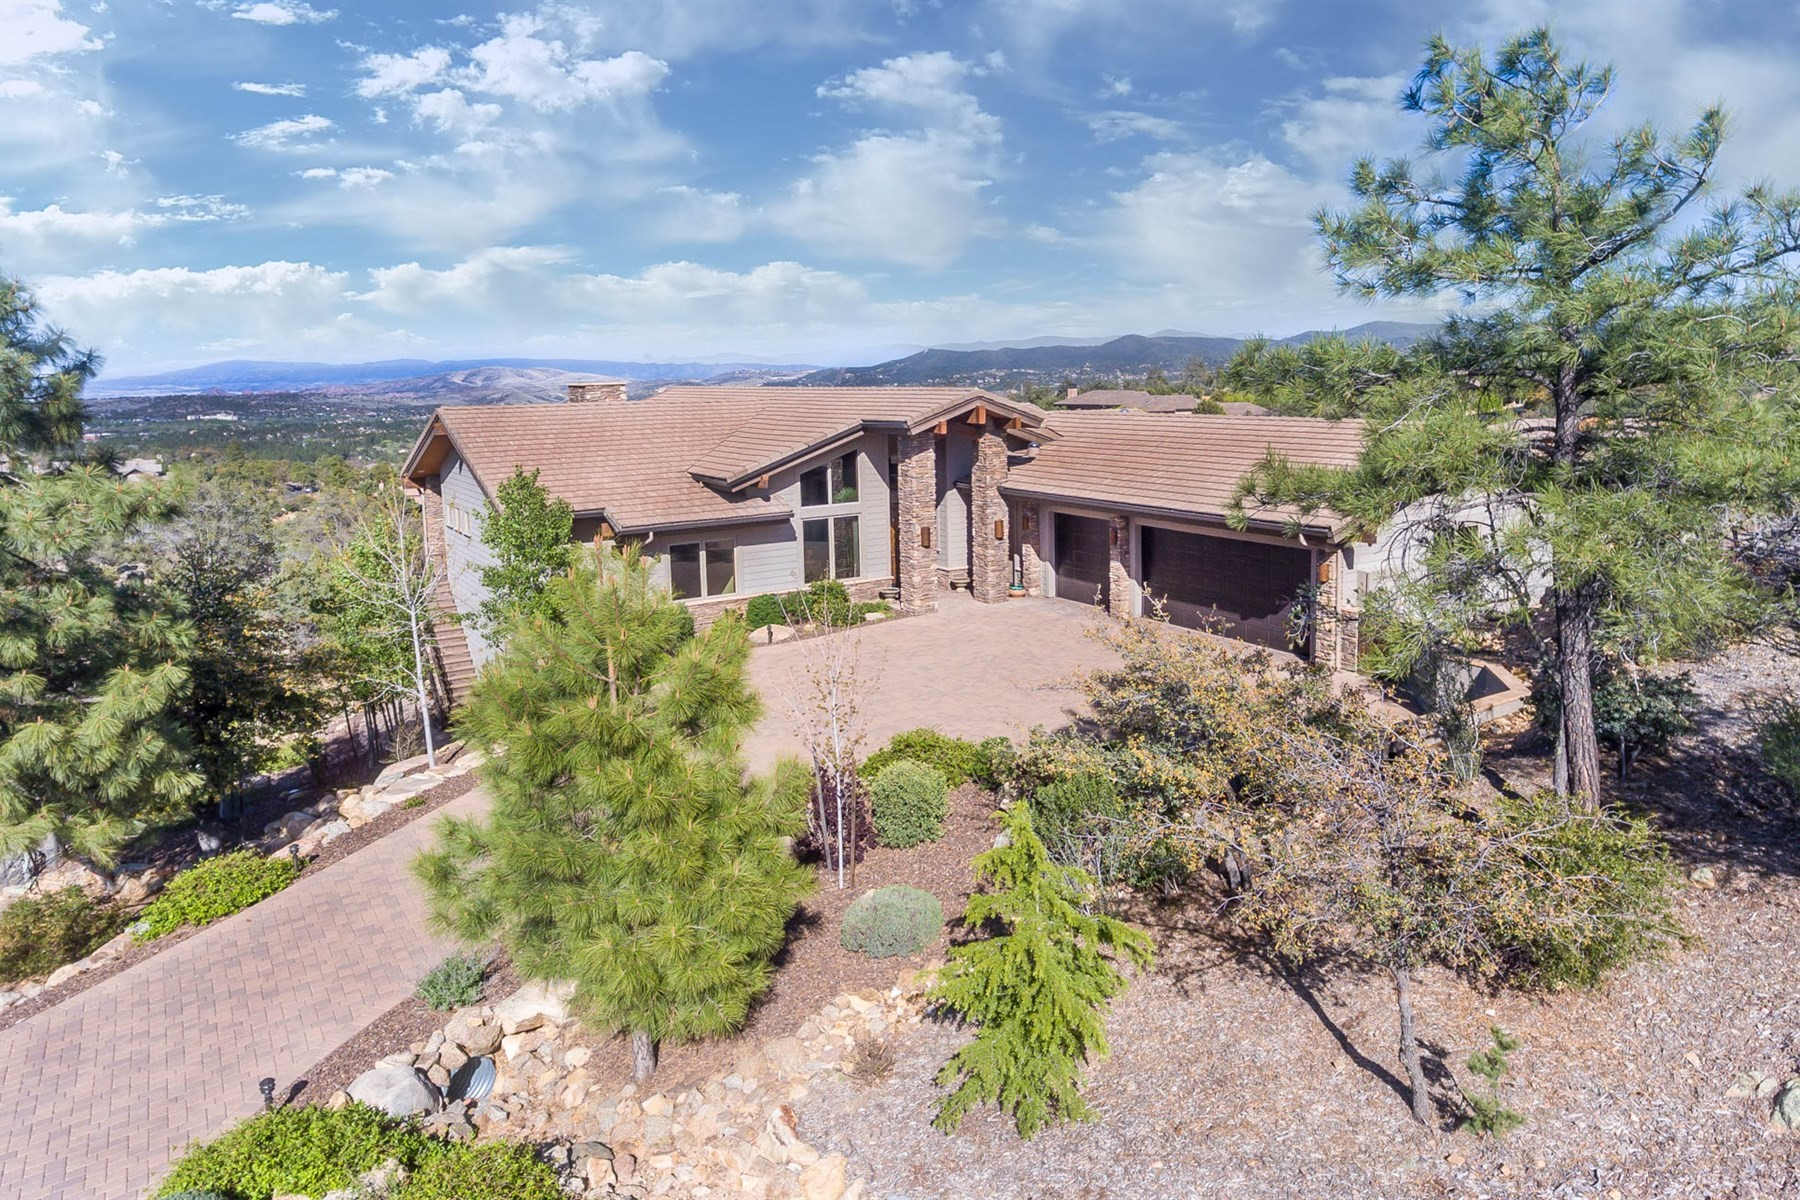 واحد منزل الأسرة للـ Sale في Custom two story home with amazing views 871 Mavrick Mountain Trl Prescott, Arizona, 86303 United States